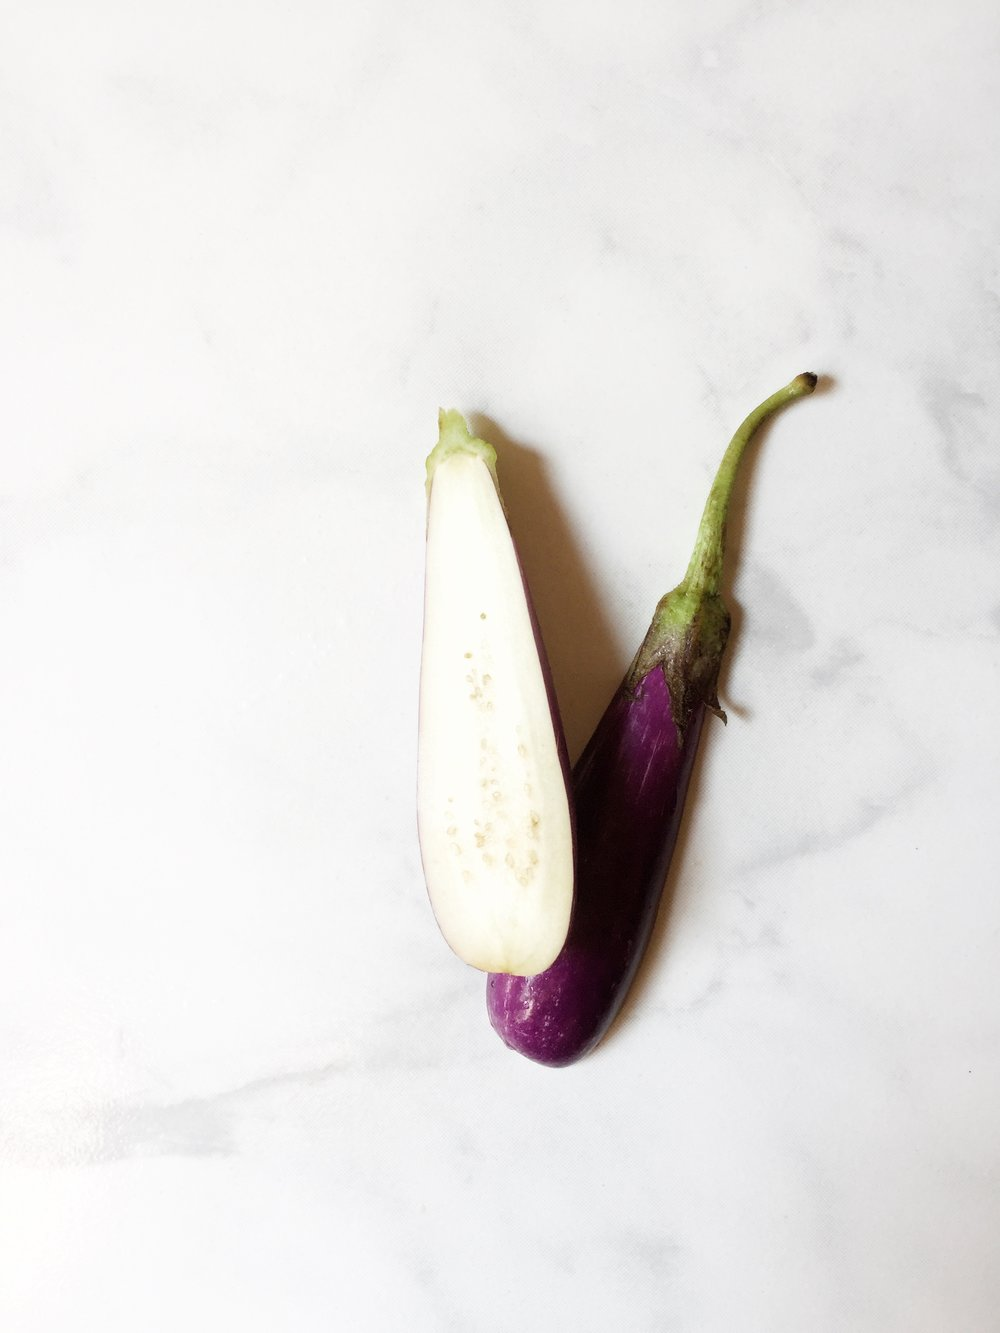 I've used fairy tale eggplants, but I recommend Italian or Japanese dark purple eggplants for Bengali begun'er tok.